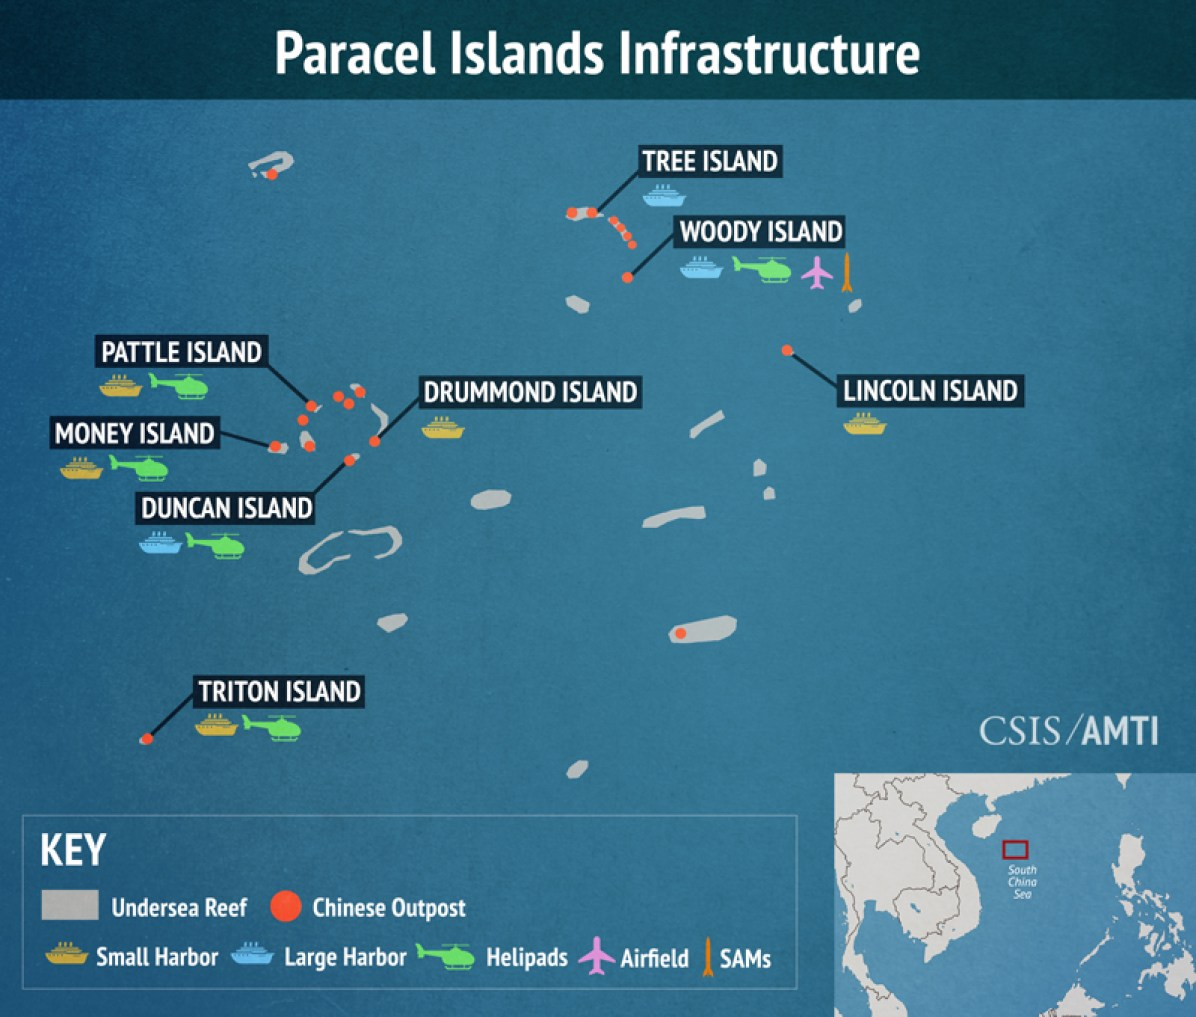 parcels_map_infrastructure_3